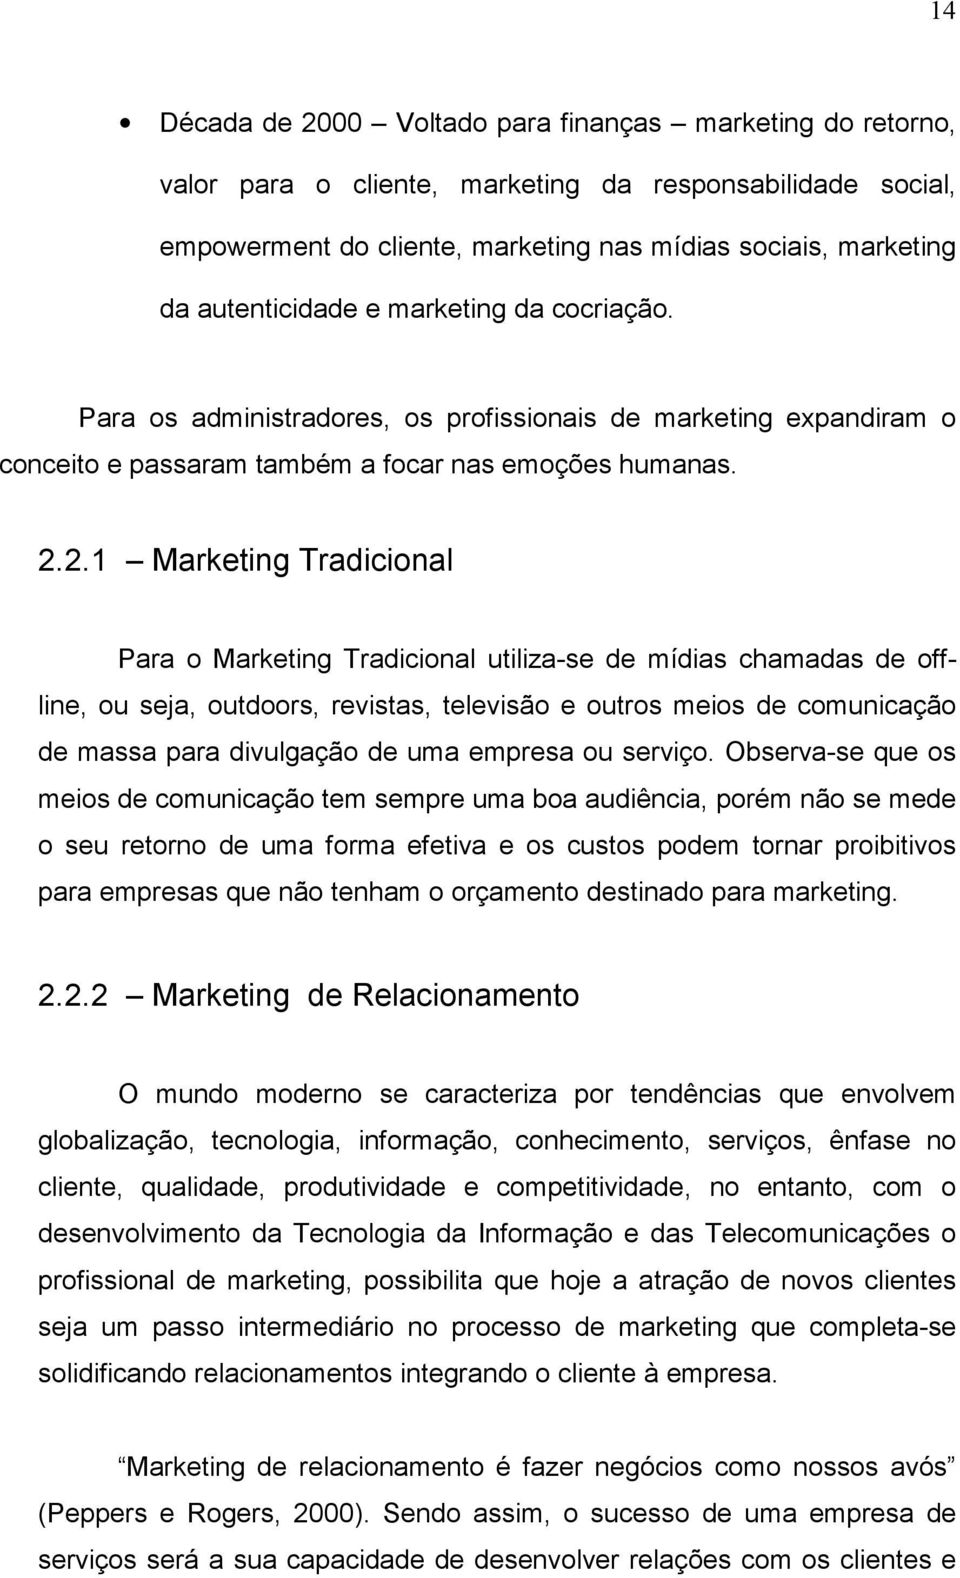 2.1 Marketing Tradicional Para o Marketing Tradicional utiliza-se de mídias chamadas de offline, ou seja, outdoors, revistas, televisão e outros meios de comunicação de massa para divulgação de uma